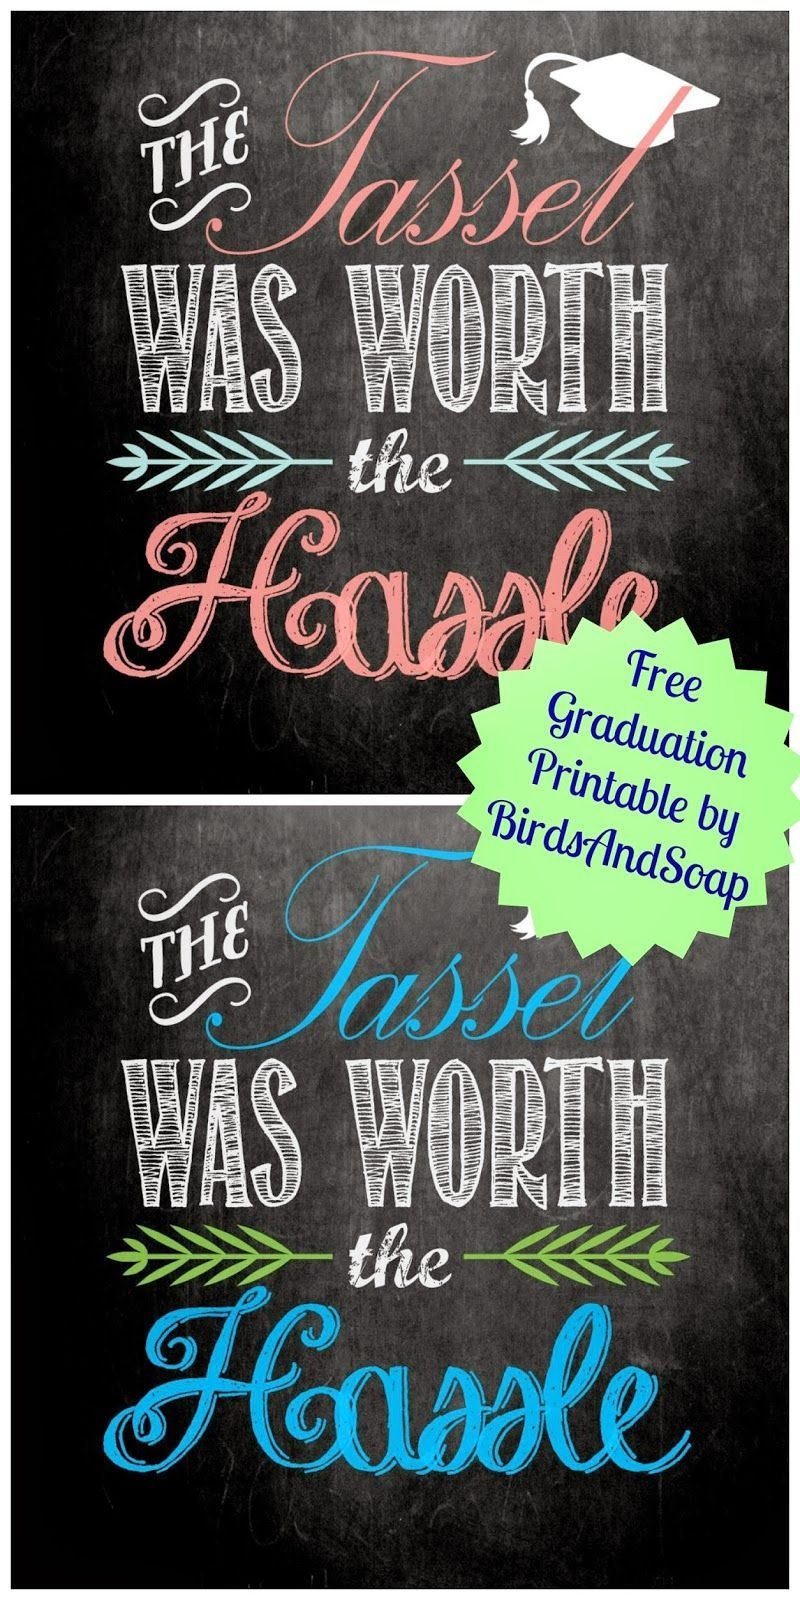 "The Tassel Was Worth The Hassle"" Free Graduation Printables. 